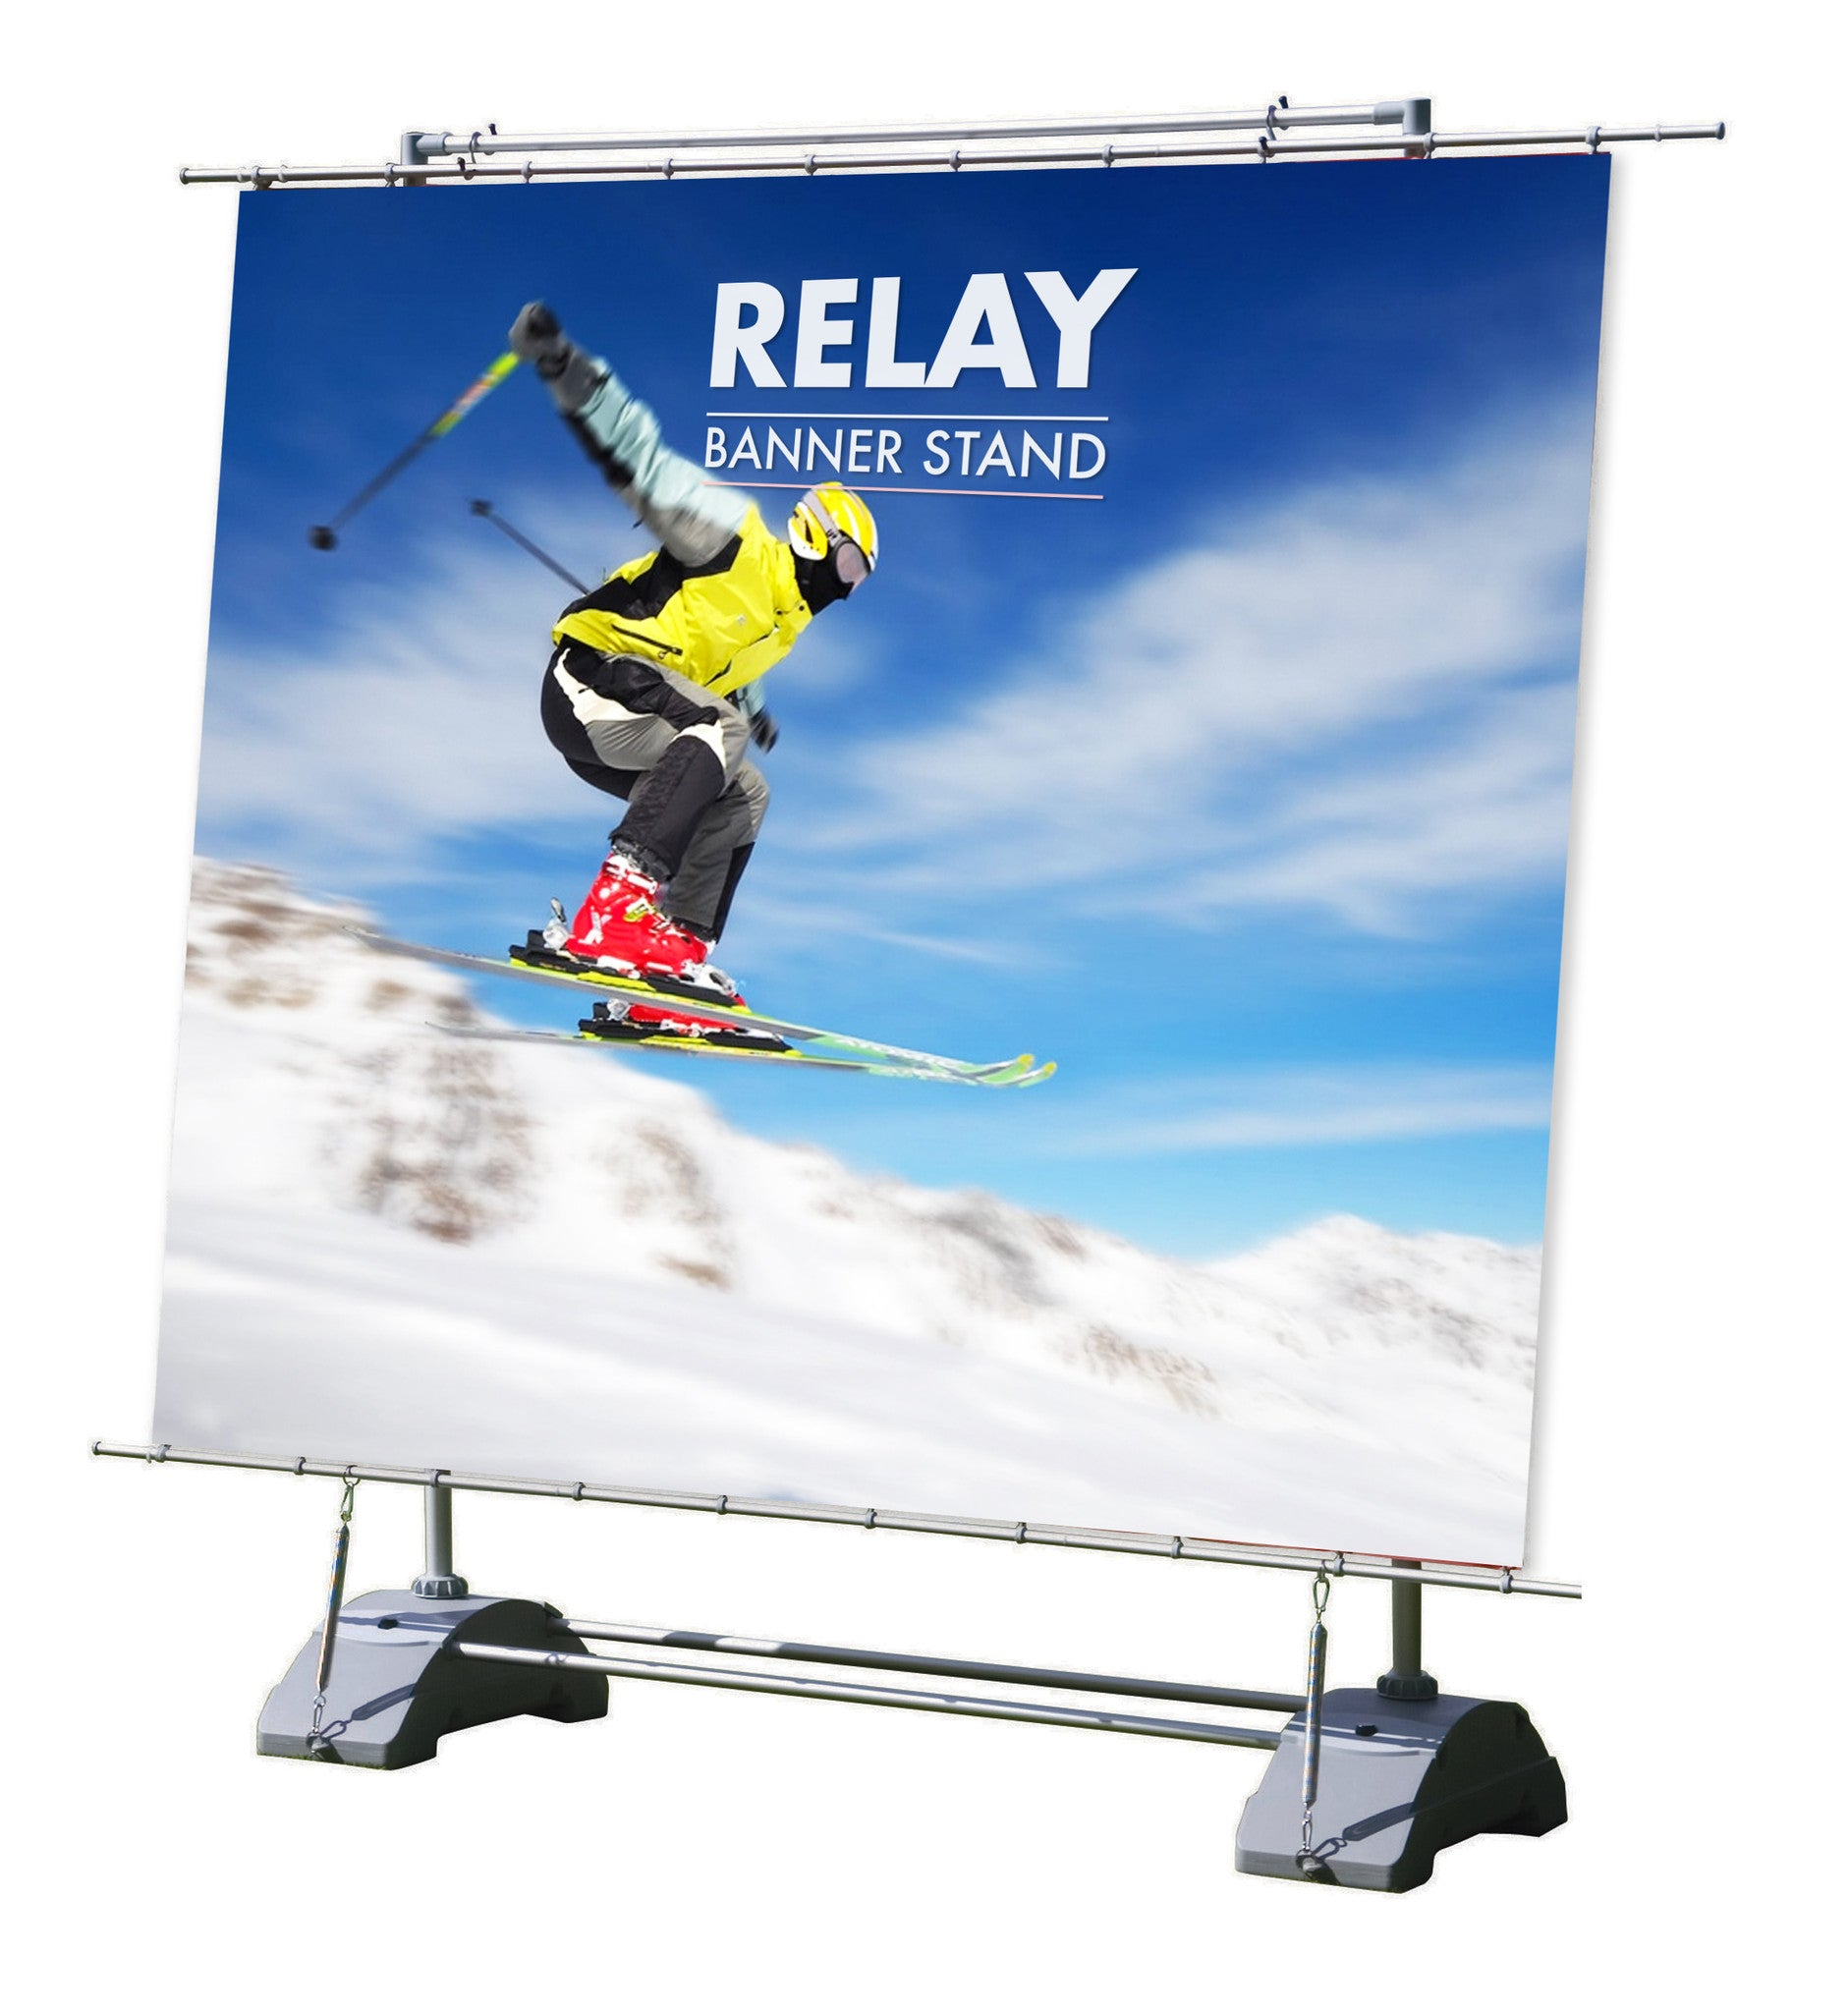 RELAY HORIZON LARGE OUTDOOR ADVERTISING MARKETING BANNER STAND